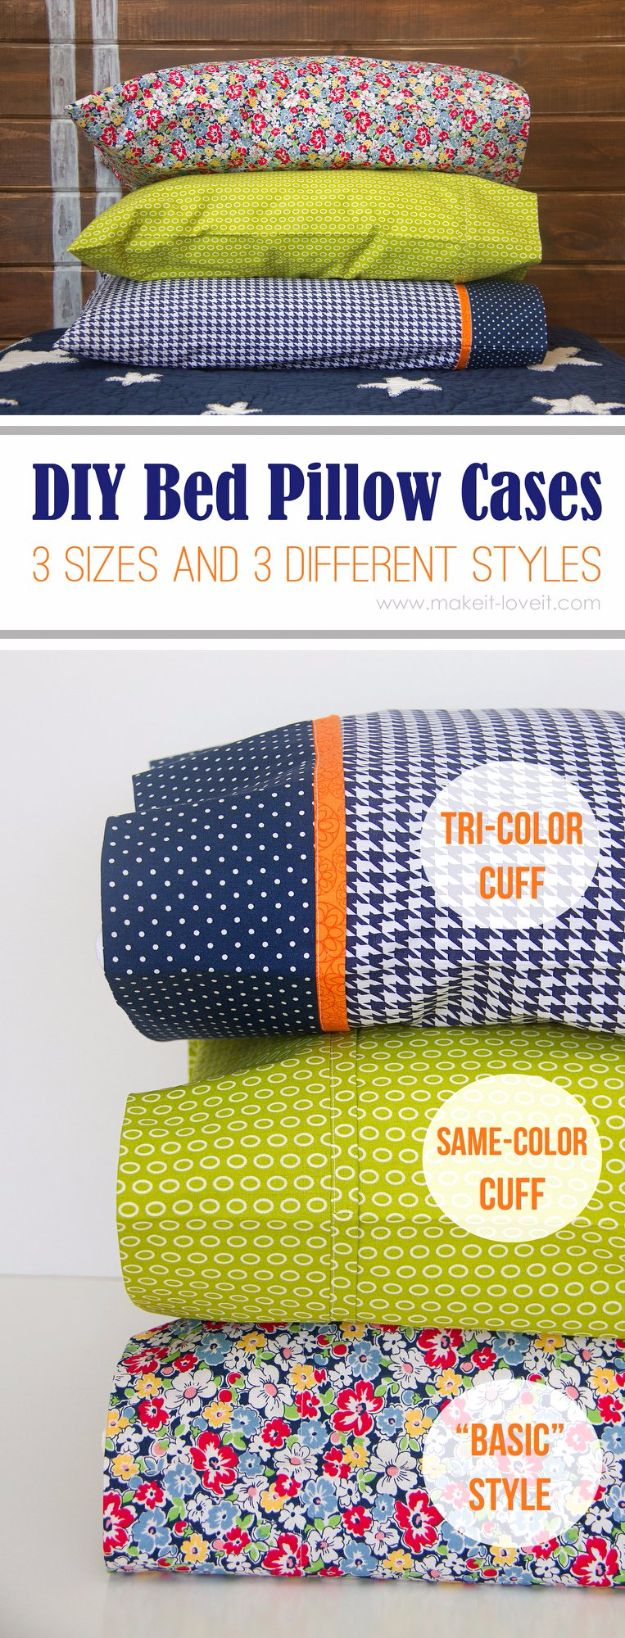 DIY Pillowcases - DIY Bed Pillow Cases - Easy Sewing Projects for Pillows - Bedroom and Home Decor Ideas - Sewing Patterns and Tutorials - No Sew Ideas - DIY Projects and Crafts for Women http://diyjoy.stfi.re/sewing-projects-diy-pillowcases